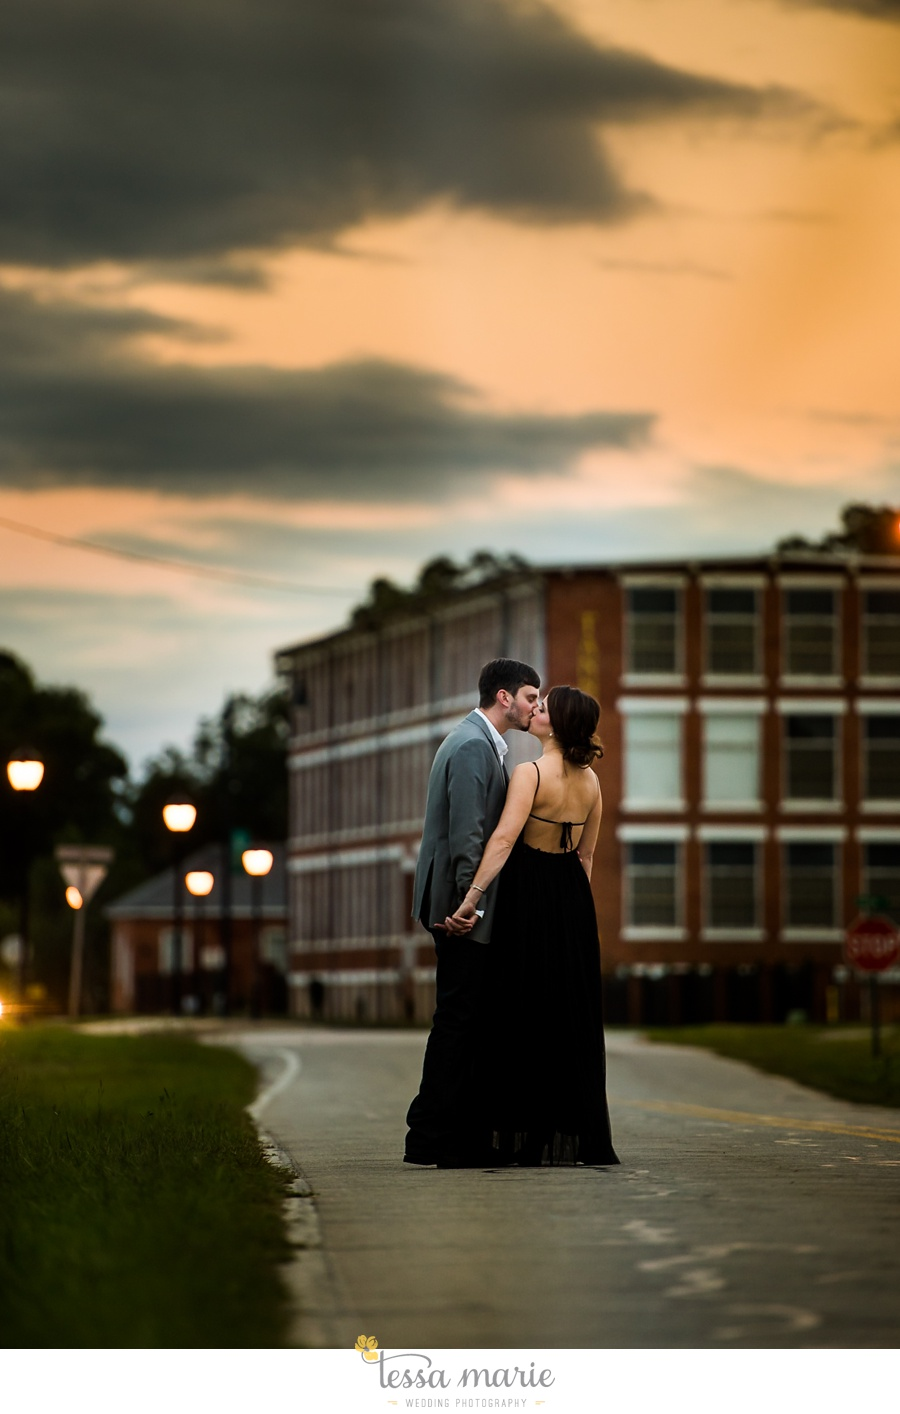 buford_engagement_sunset_pictures_tessa_marie_weddings_0025